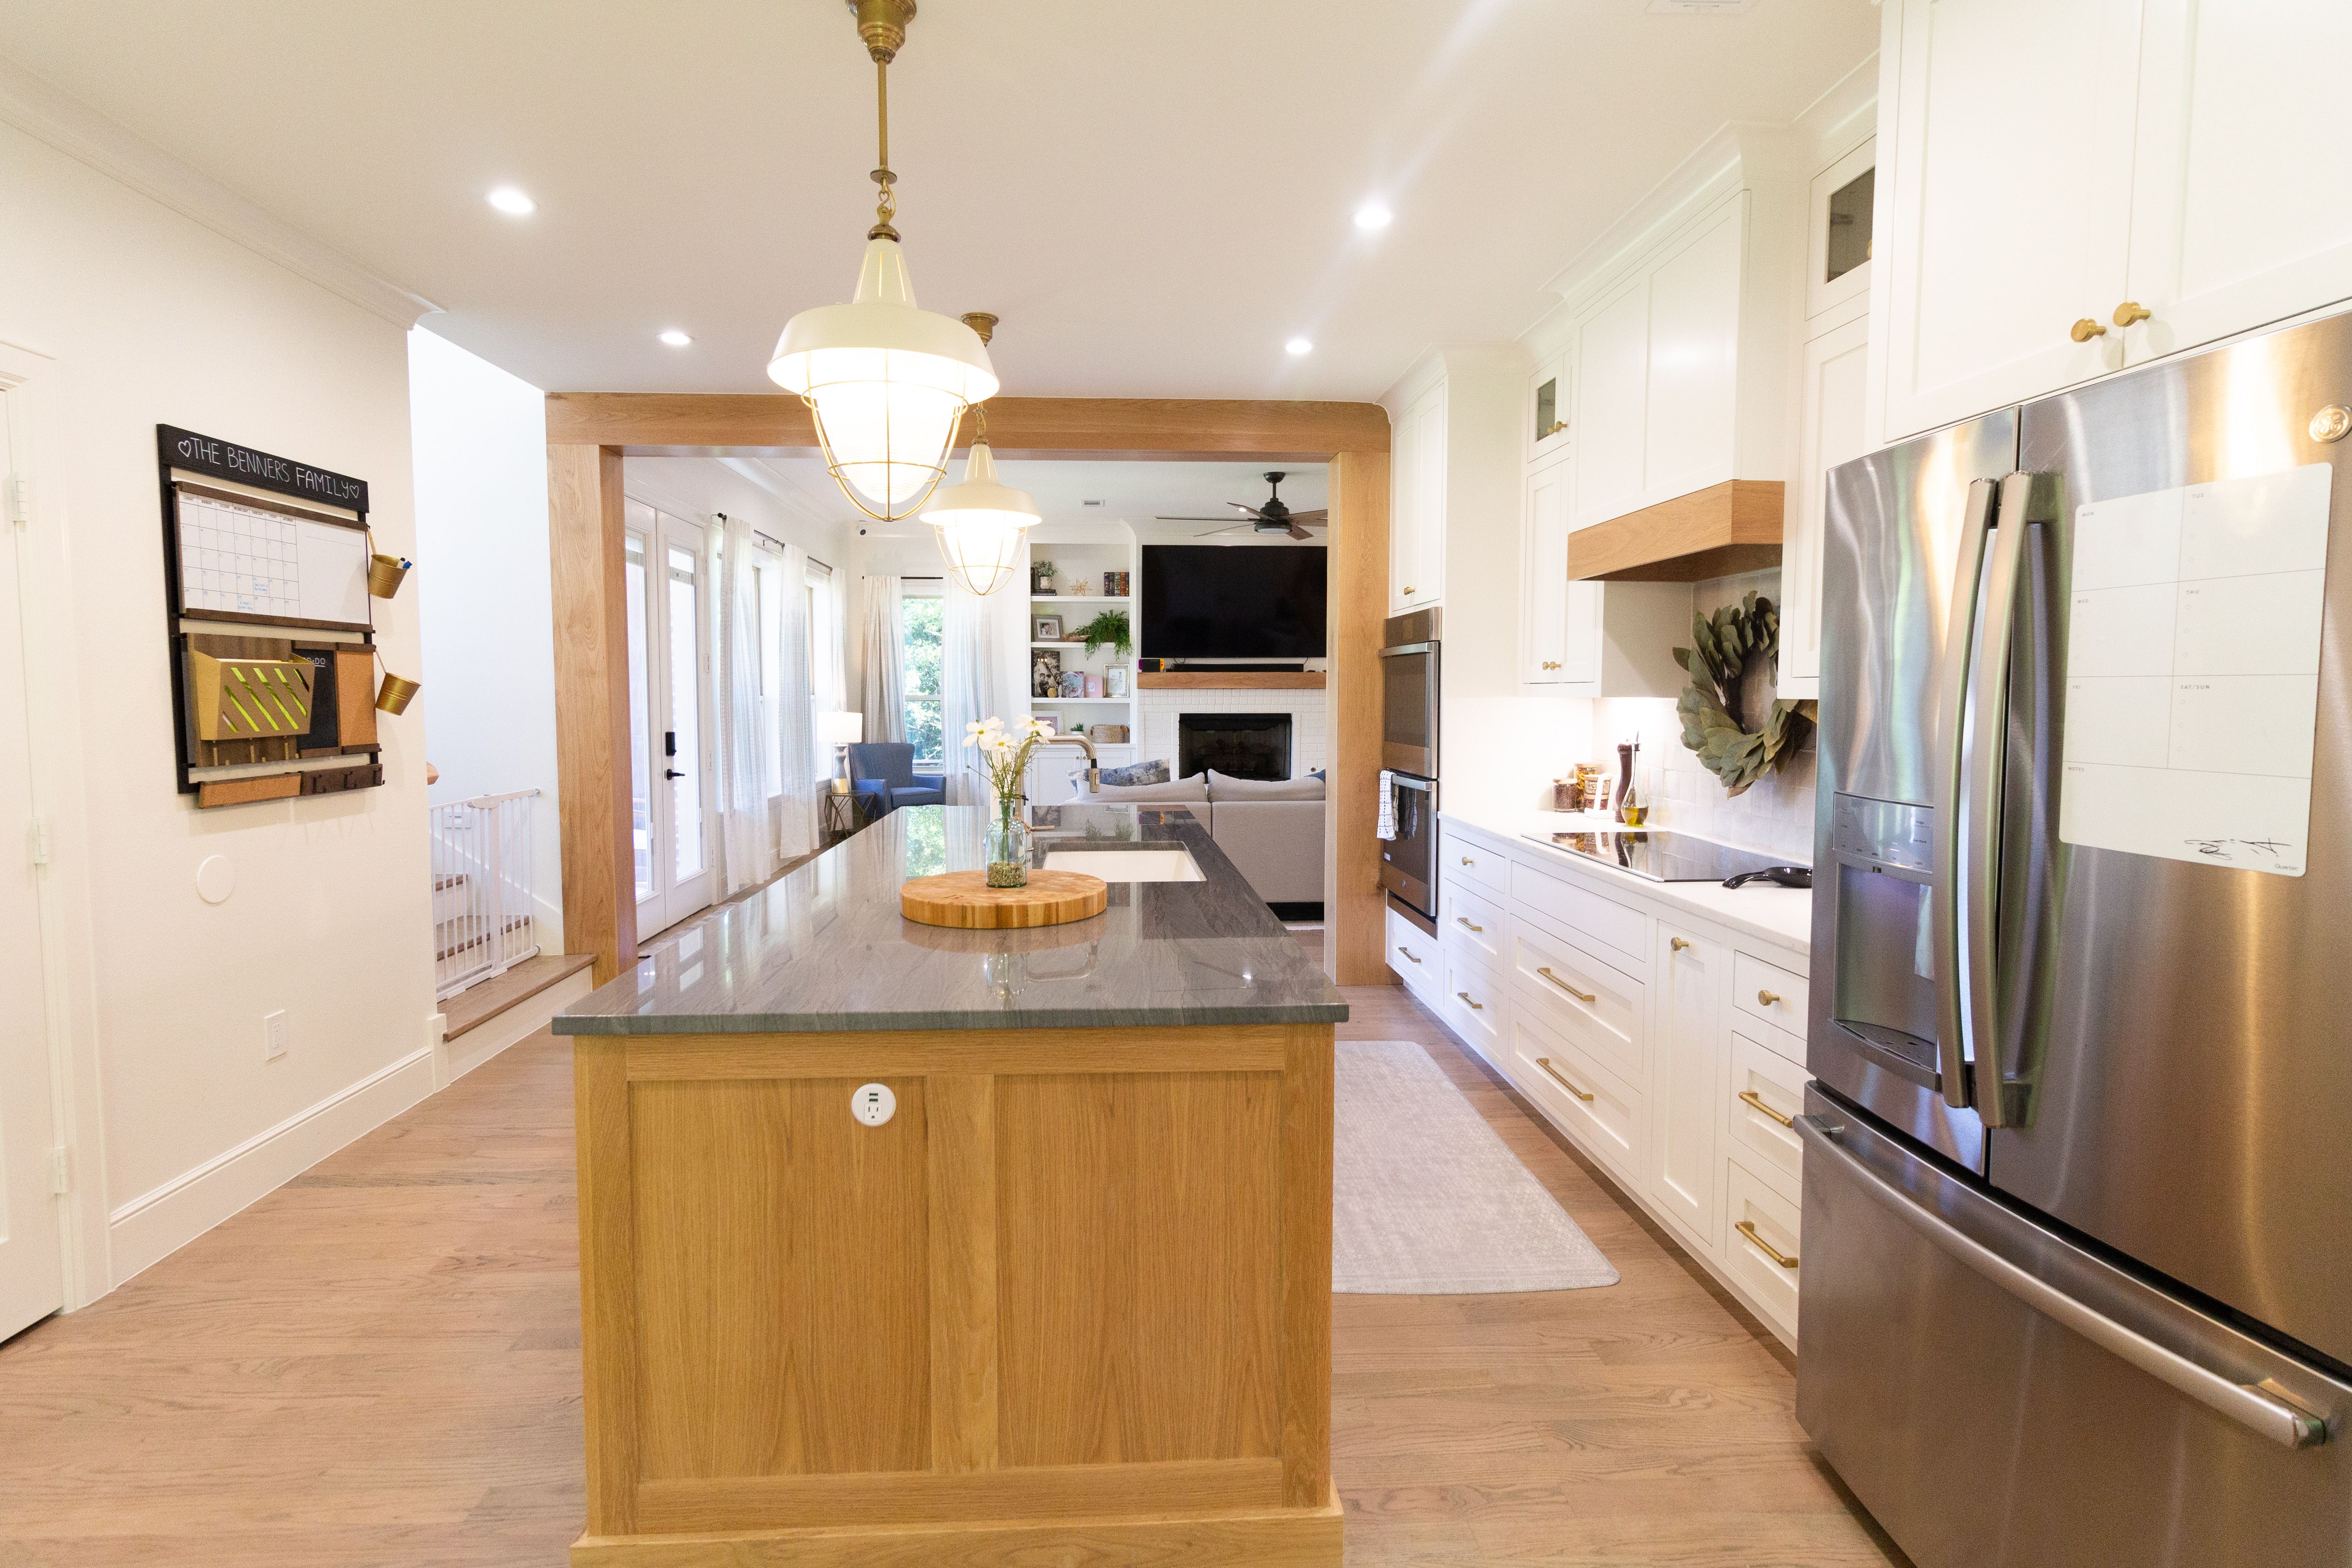 Scandinavian Kitchen With Blonde Oak Cabinets Kitchen Design Small Home Remodeling Kitchen Remodel